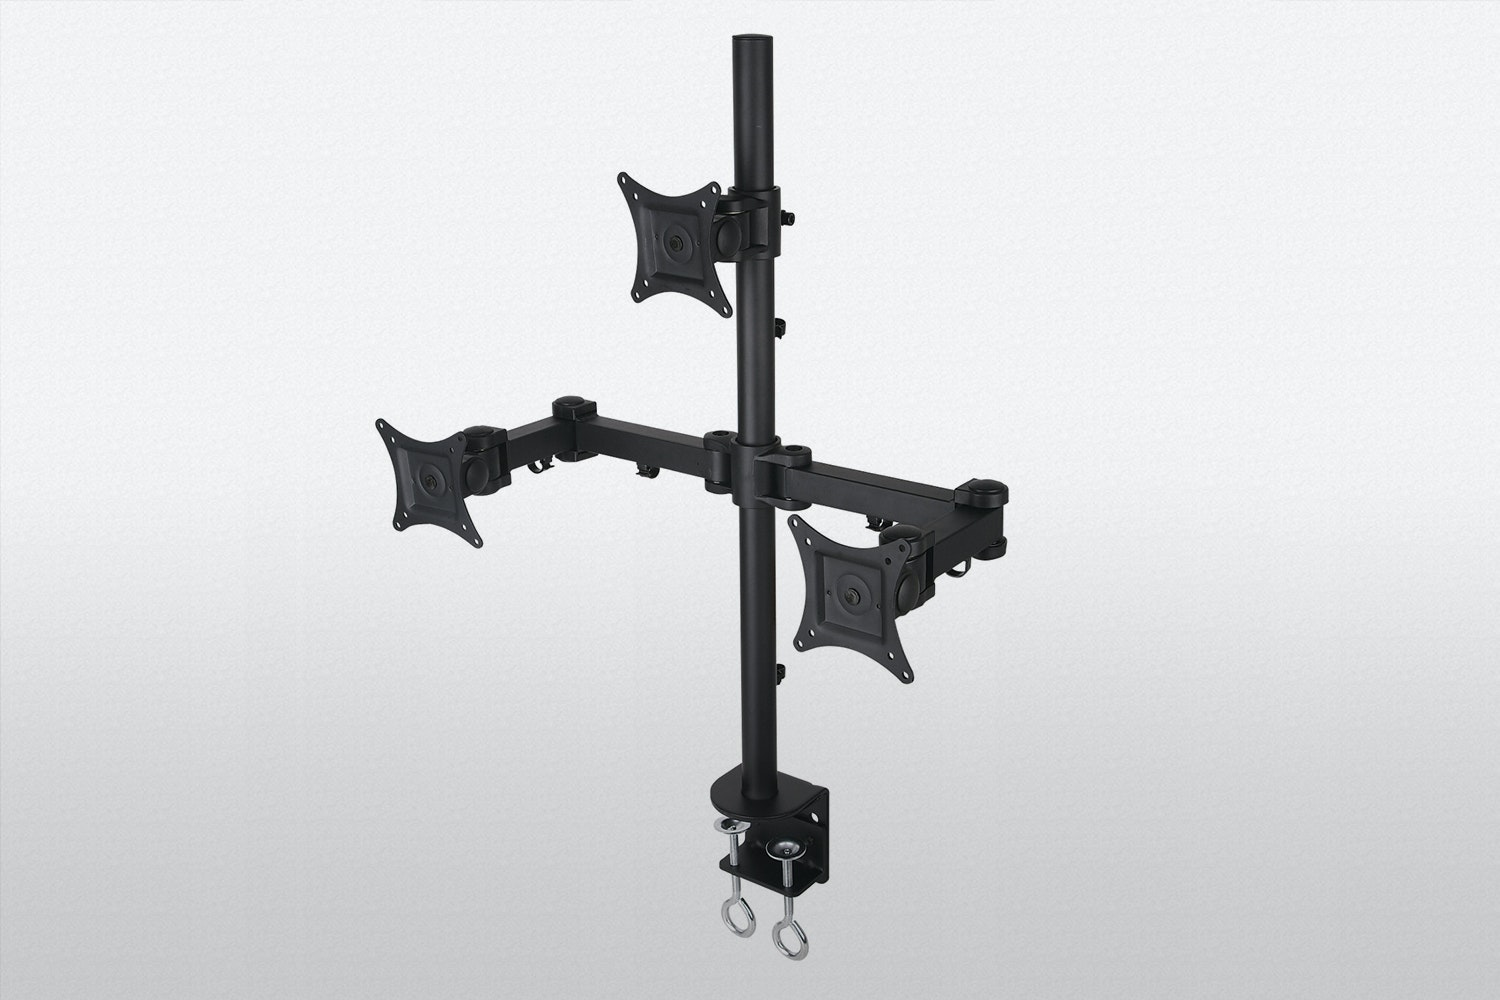 Stand-V003T (1 mount over 2 mounts)